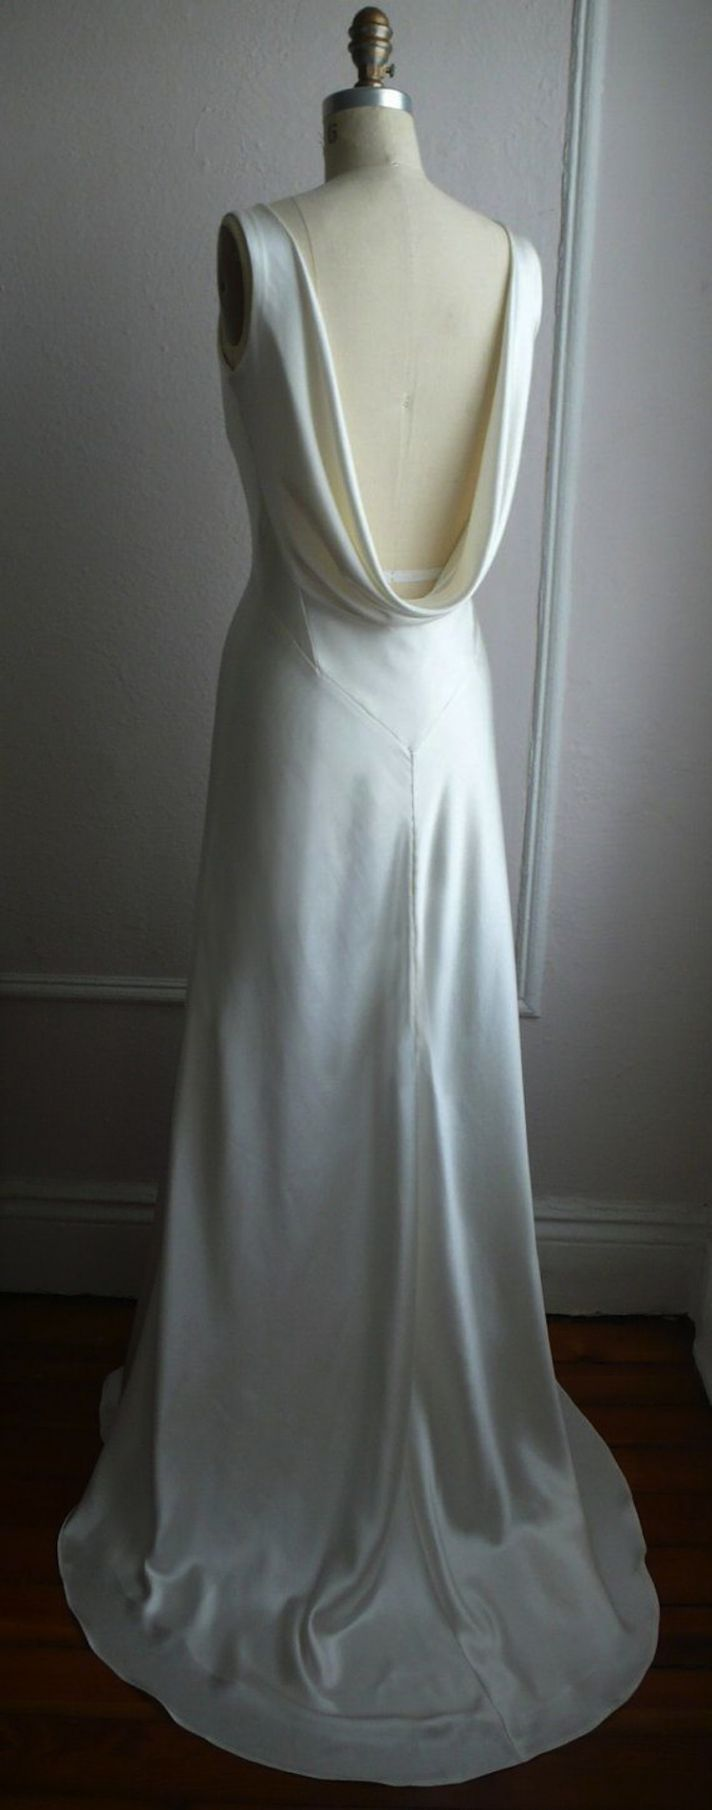 Simple White Satin Dress